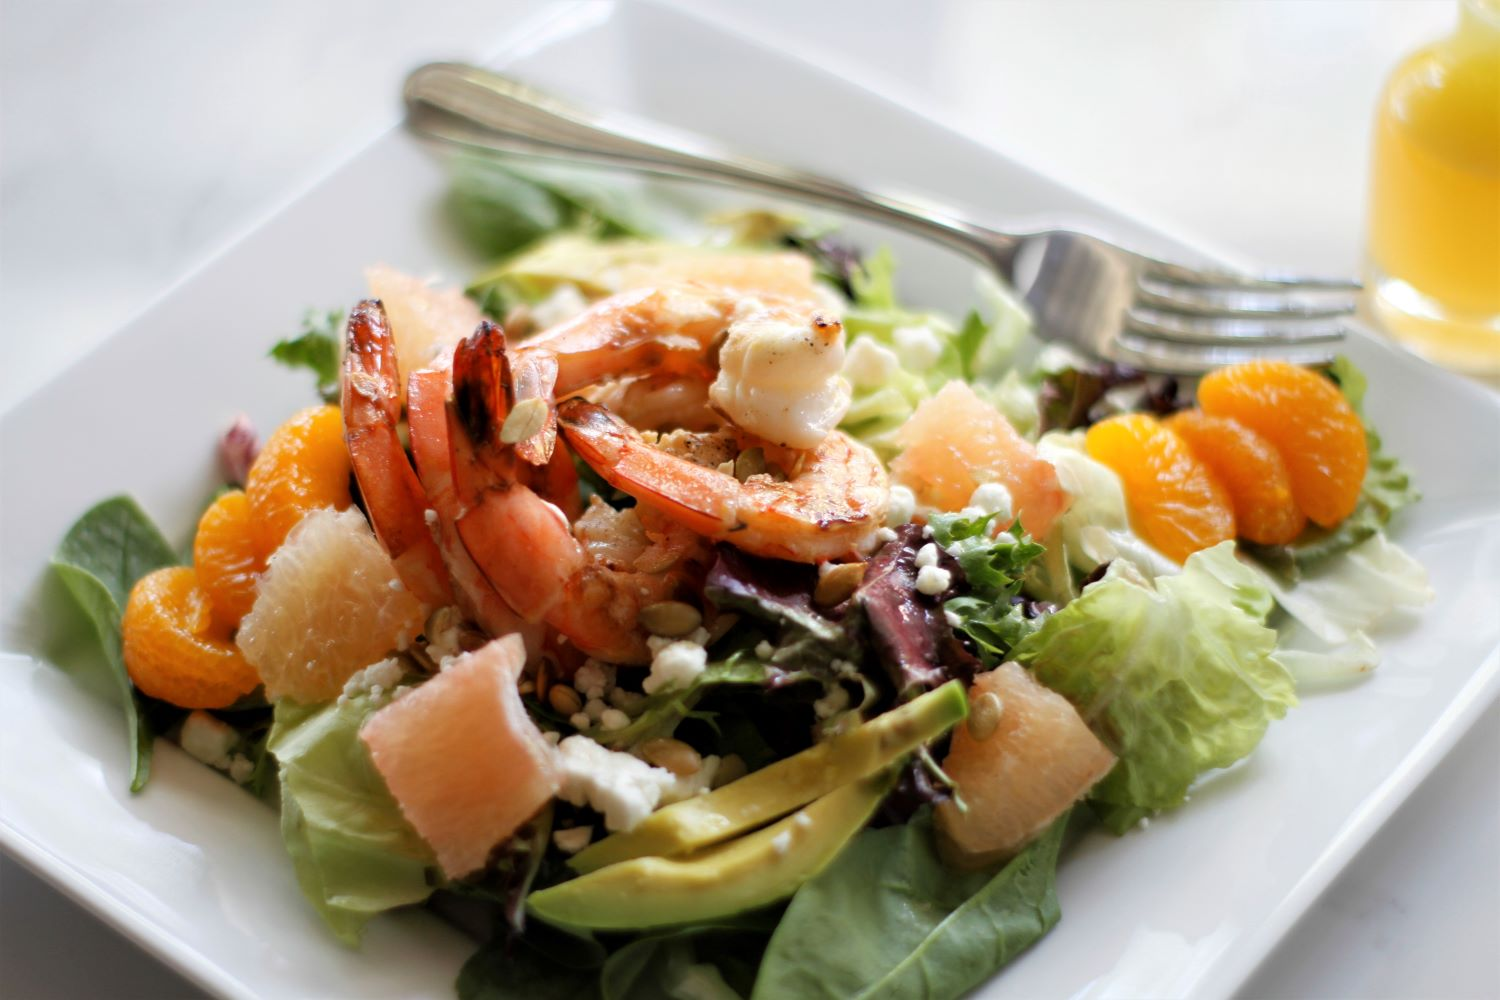 Grilled shrimp in a salad with avocado, grapefruit, madarin oranges and goat cheese